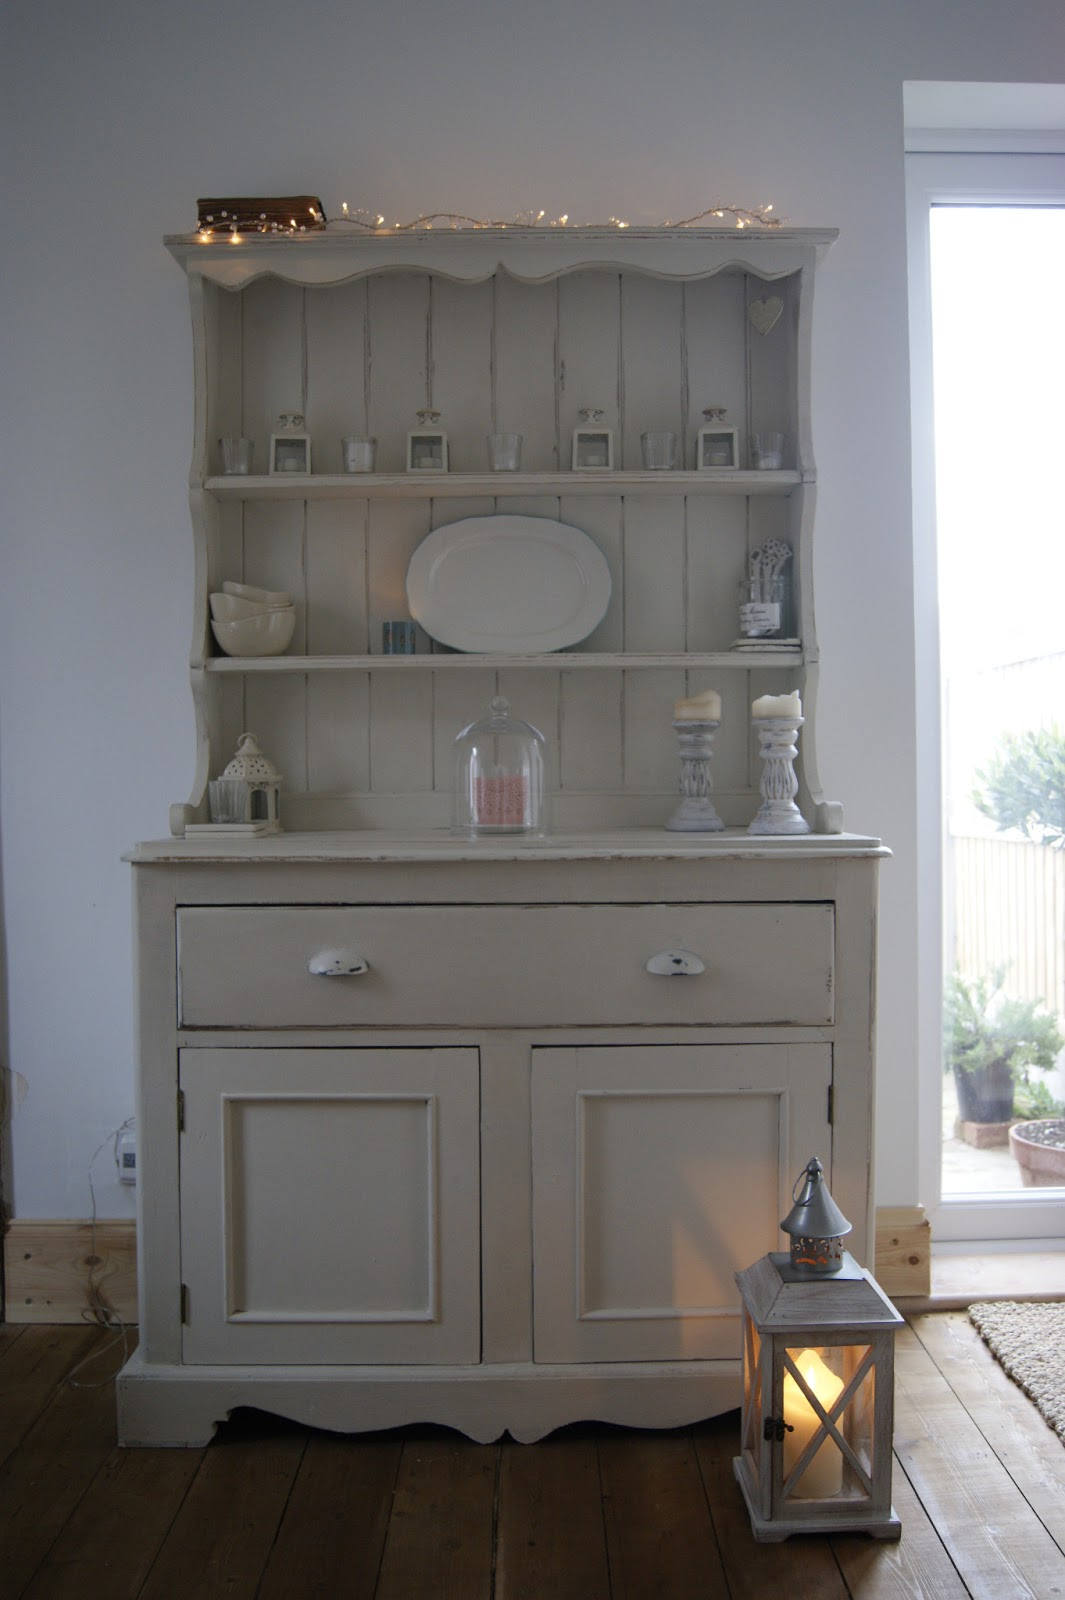 We Made This Home Revamping An Old Welsh Dresser